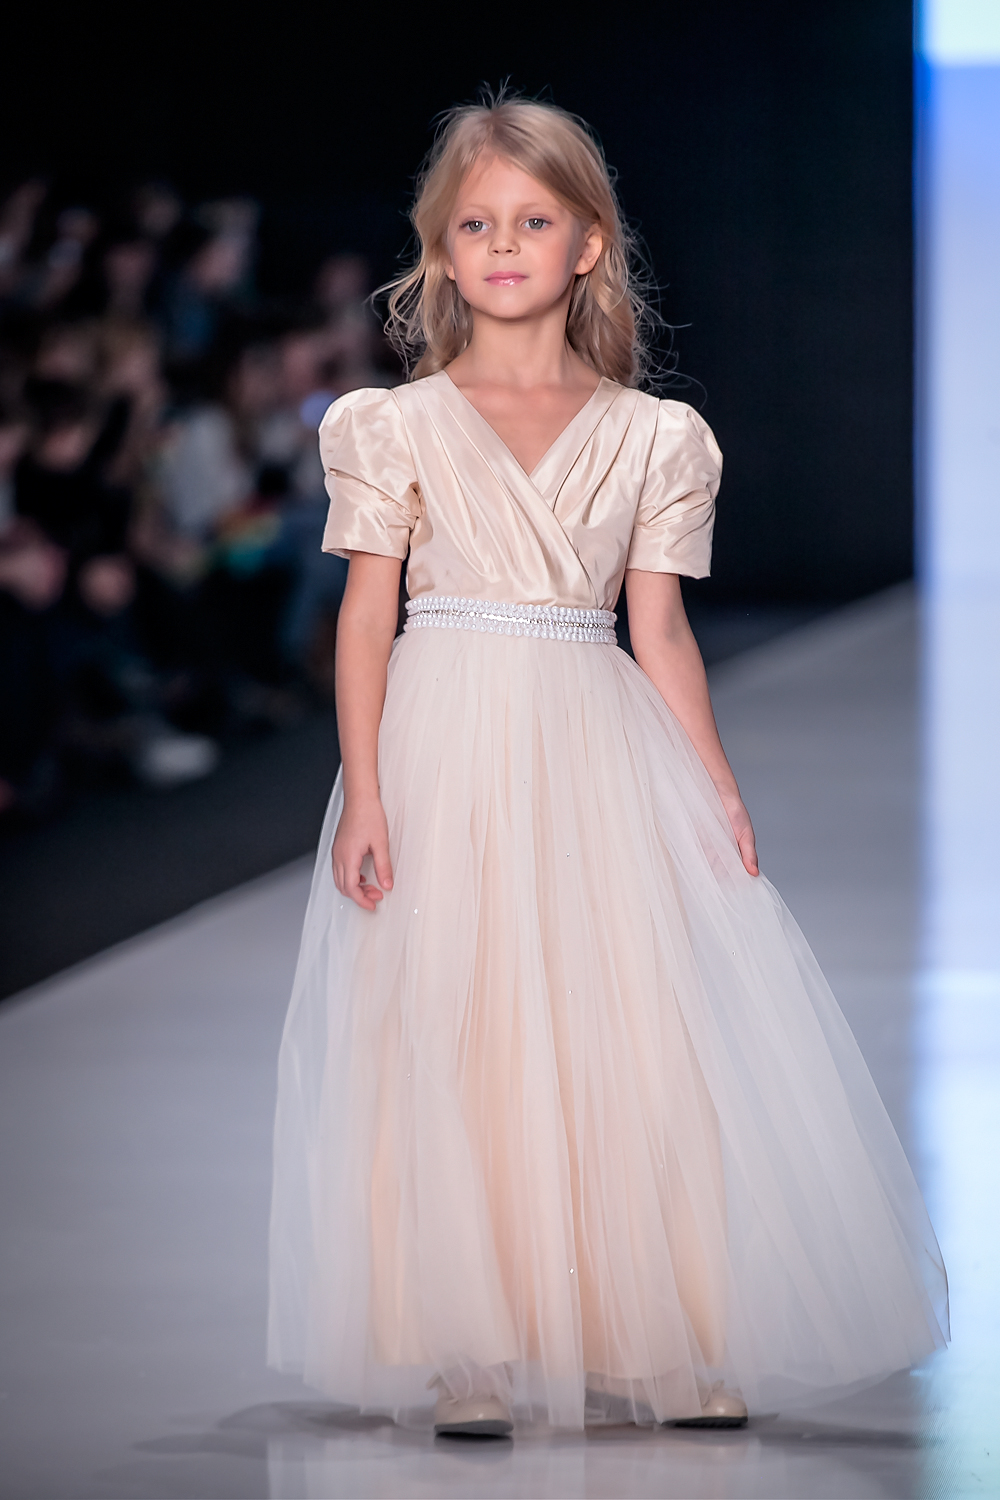 April 1 will be a show of school collections at Mersedes-Benz Fashion Week Russia